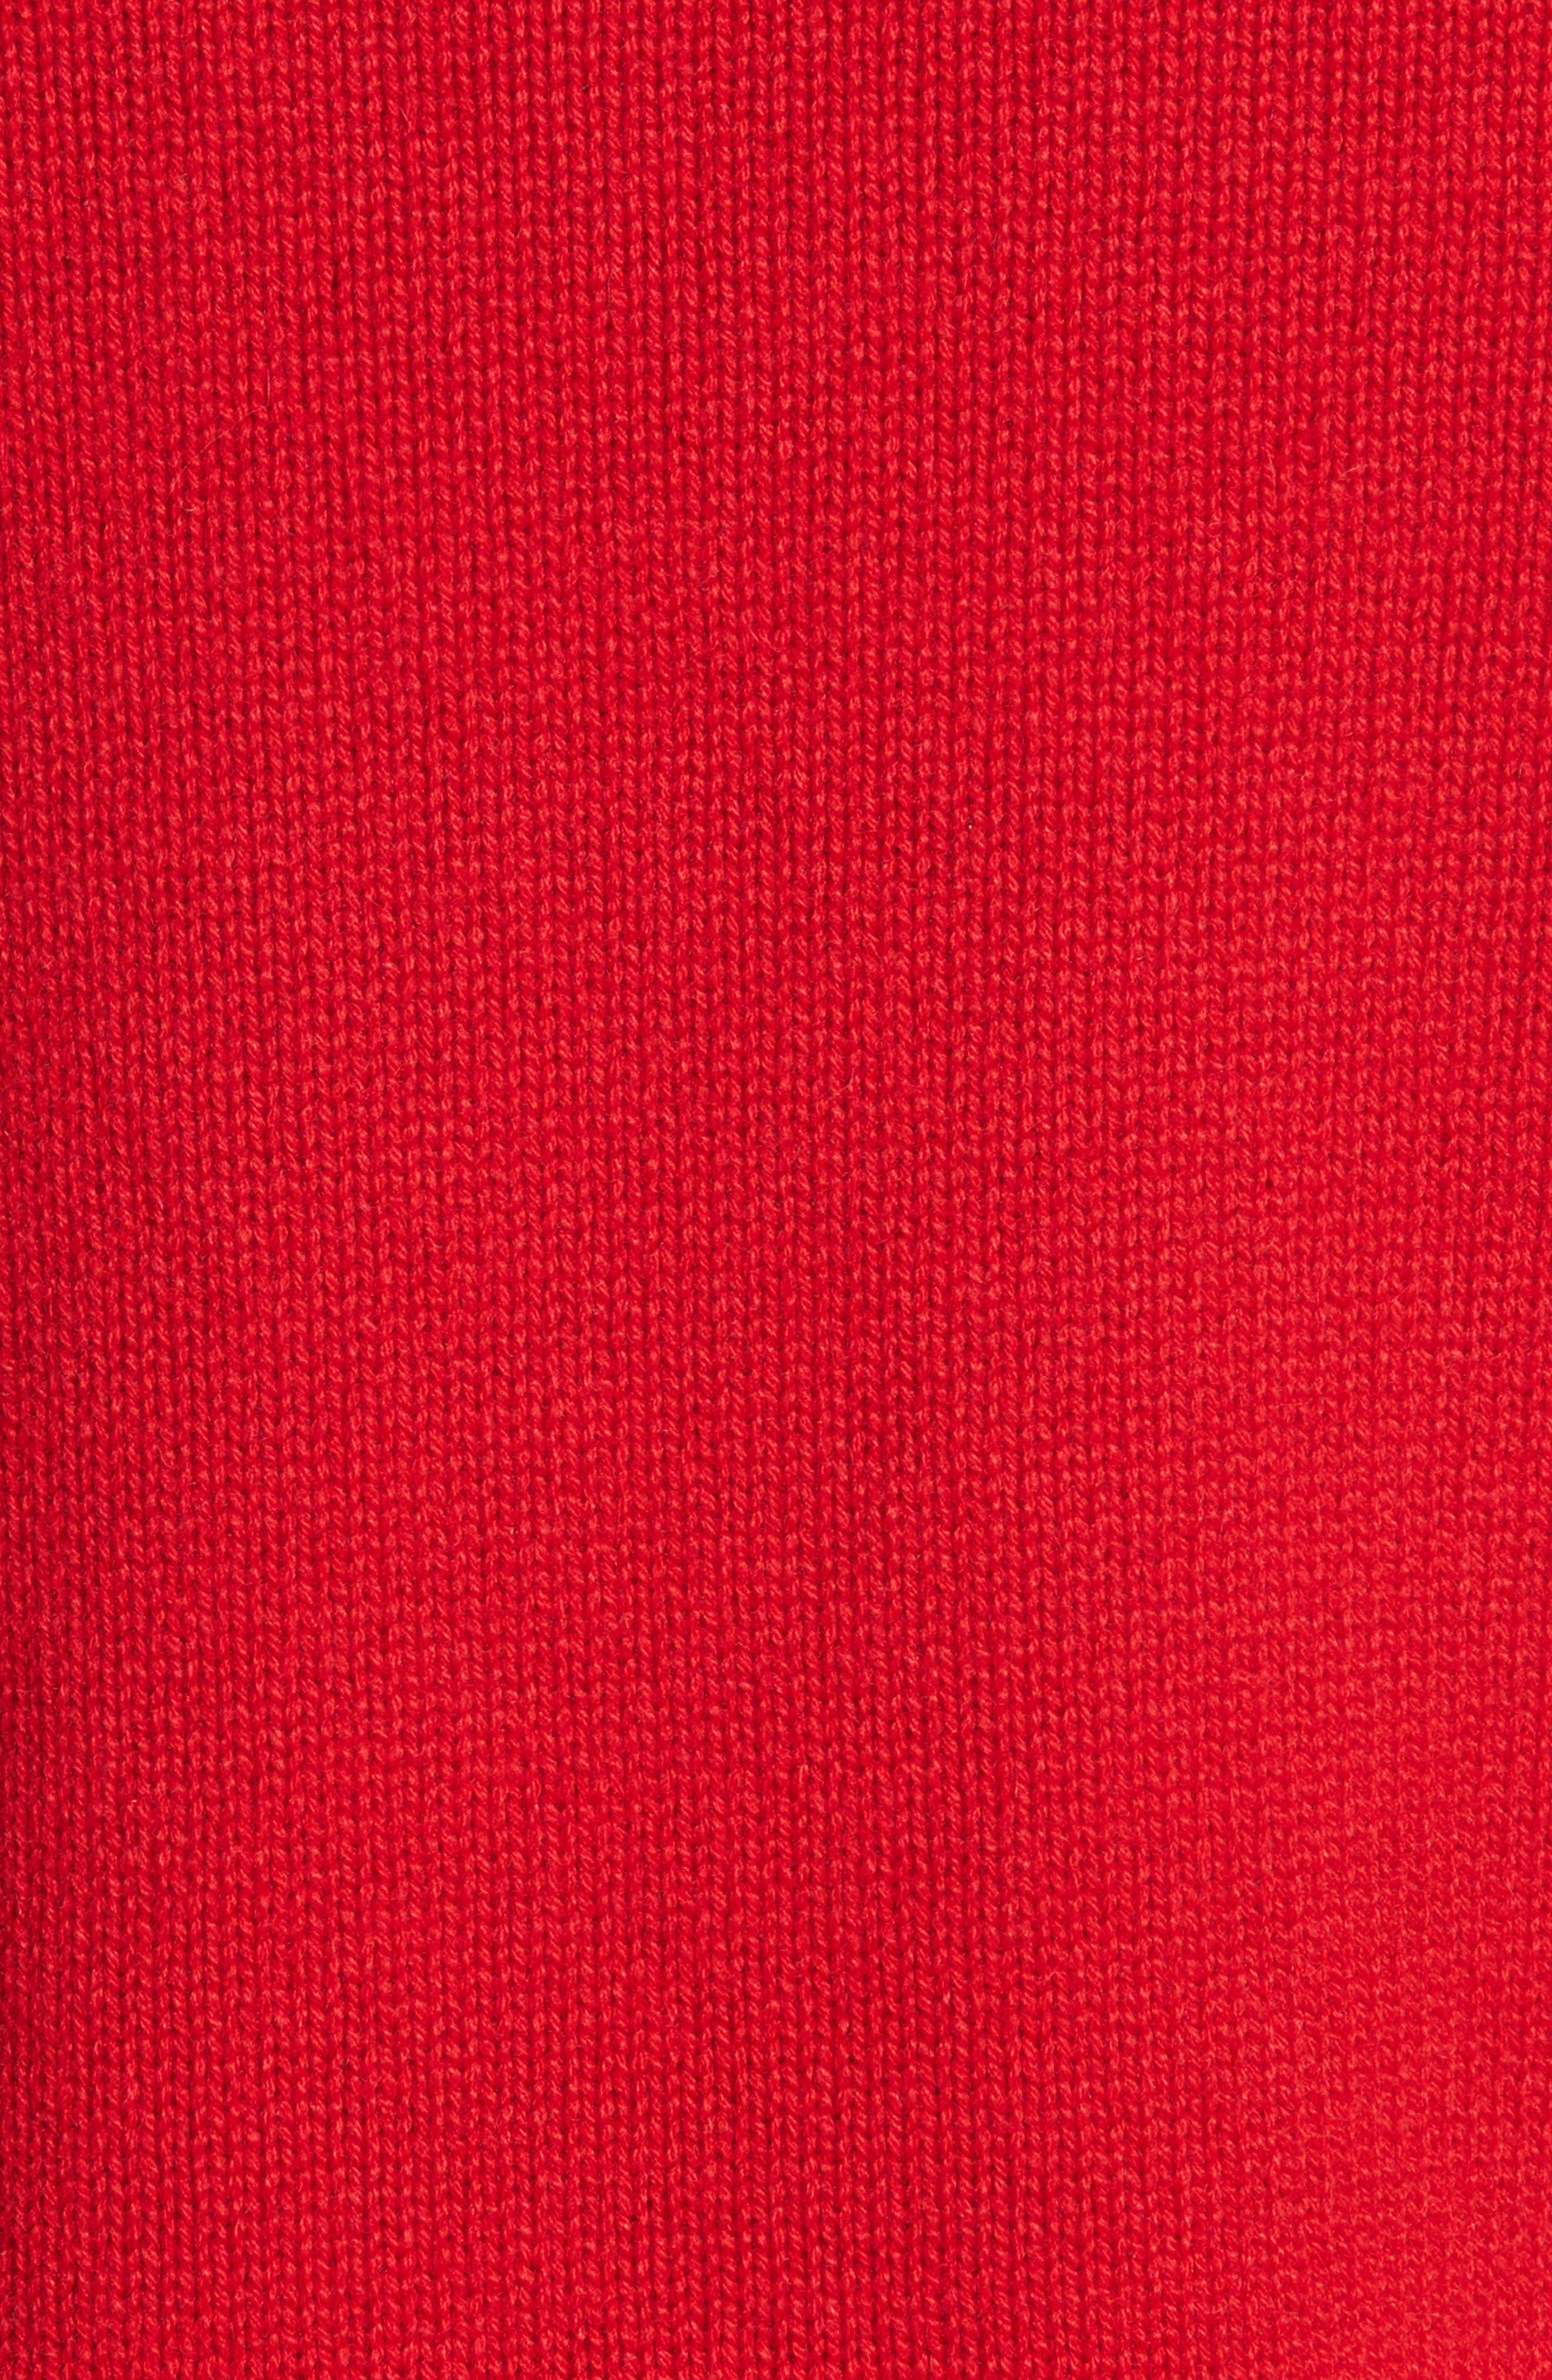 Rockstud Cashmere Sweater,                             Alternate thumbnail 5, color,                             Red